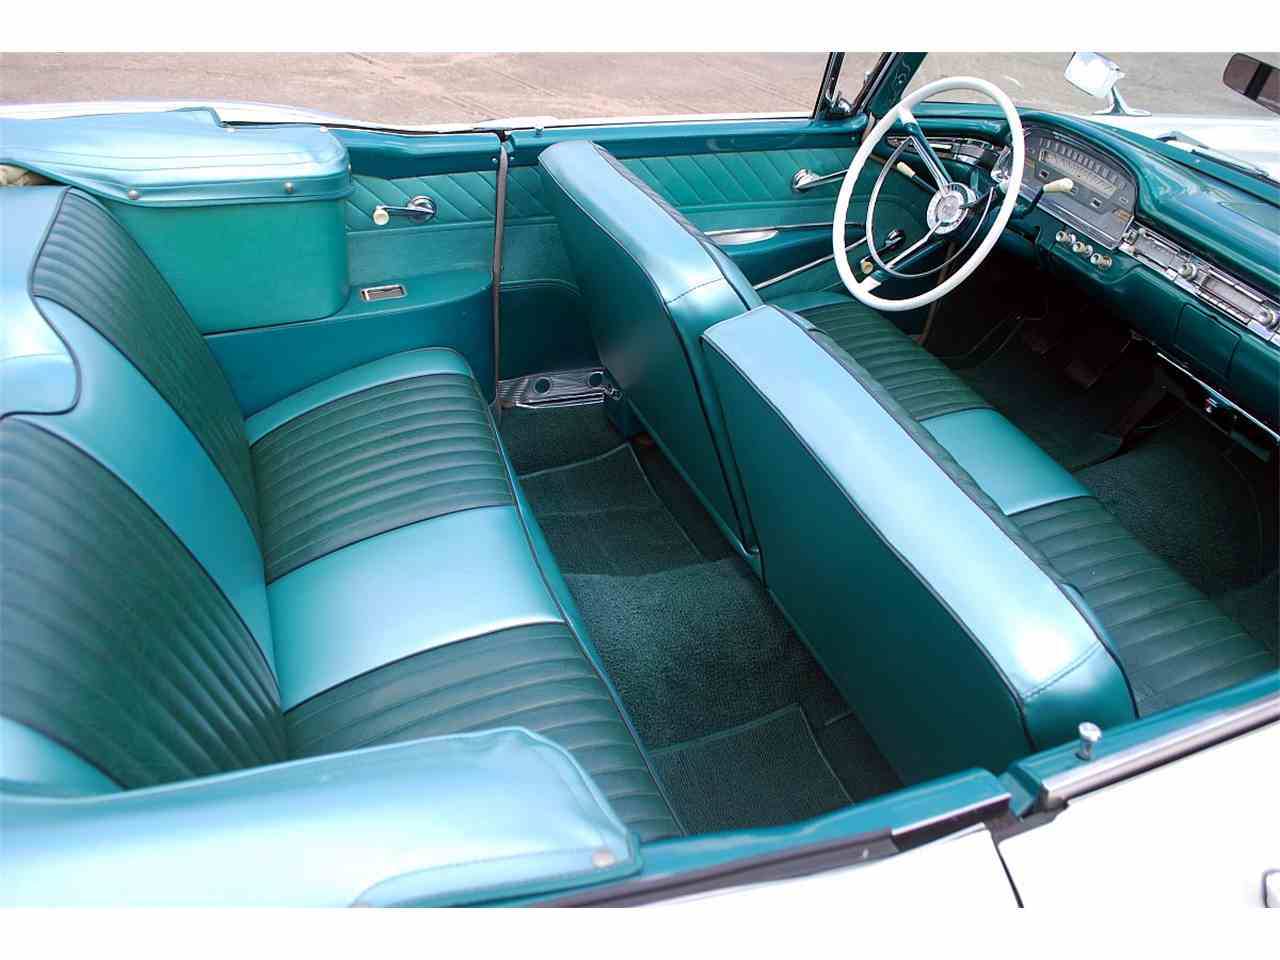 Large Picture of '59 Ford Galaxie located in Houston Texas - $39,999.00 Offered by Auto Collectors Garage - LBGZ